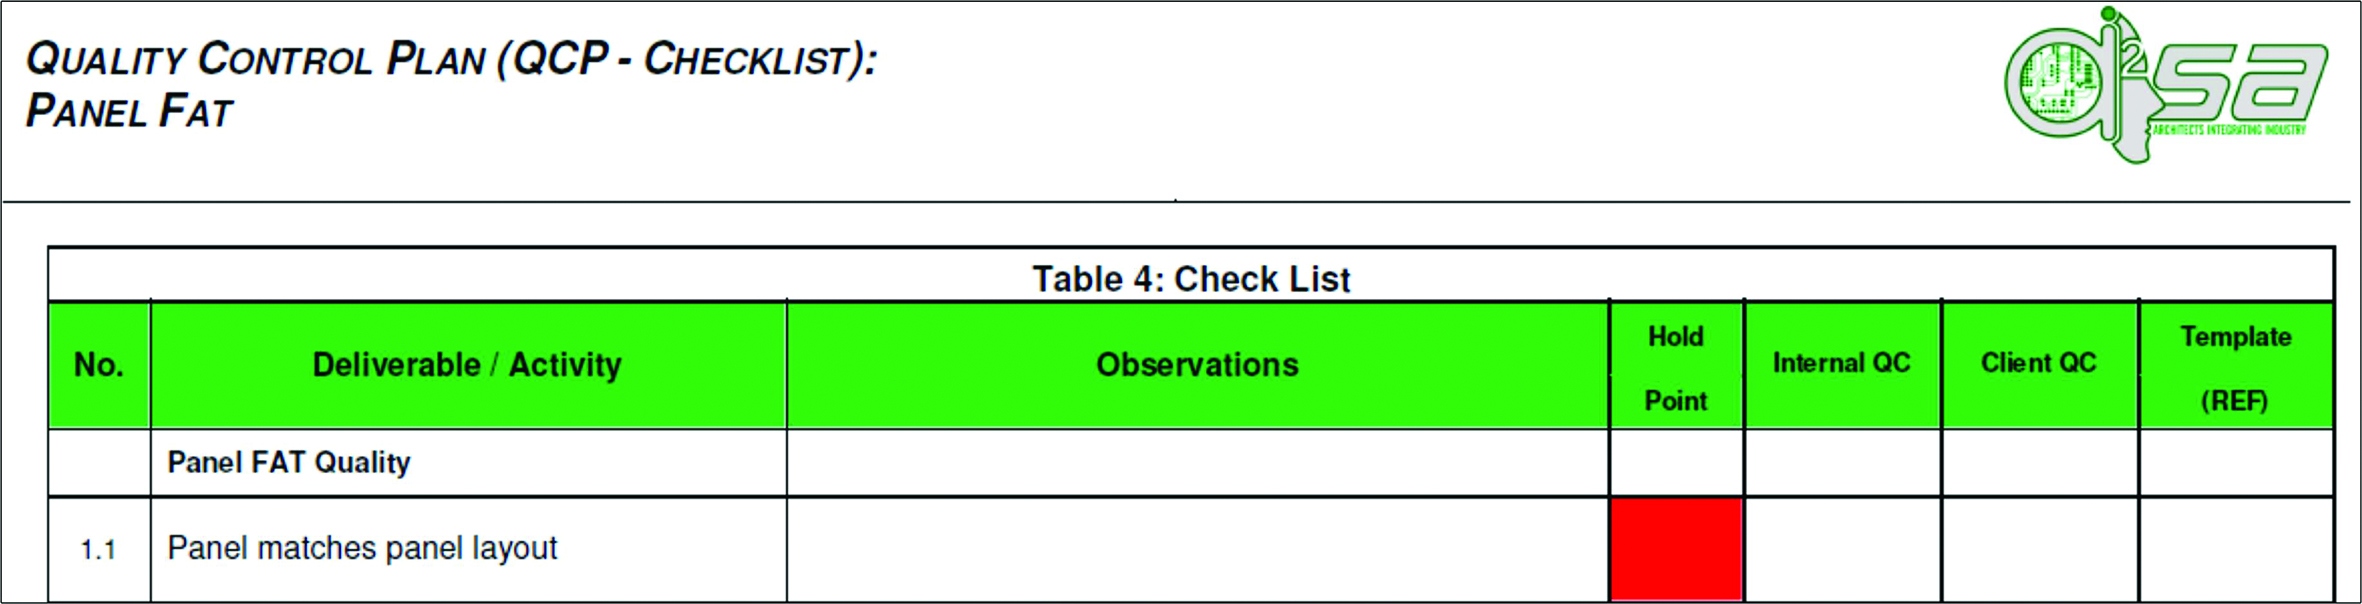 Iso 90012008 certification for control systems projects ee fig 4 example of a form template xflitez Gallery